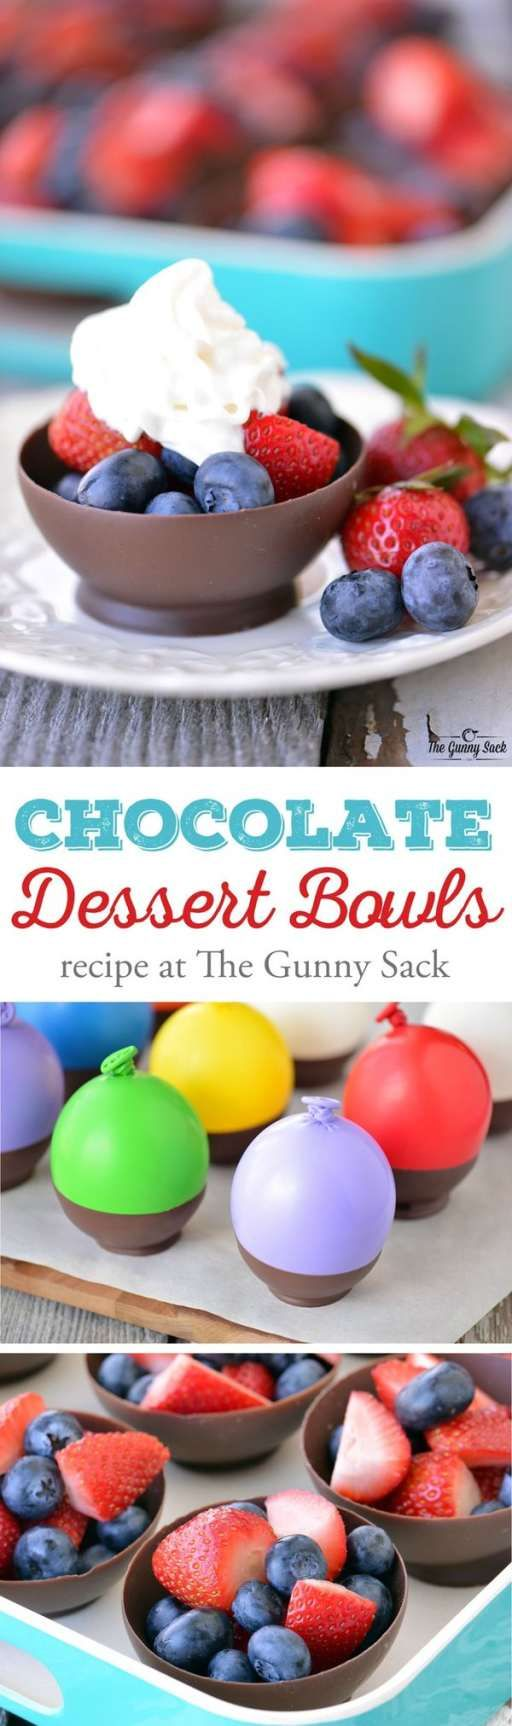 These Chocolate Dessert Bowls are made by dipping balloons in chocolate! The recipe is easy to follow and chocolate bowls can be filled with fresh fruit. #targetcrowd #sponsored